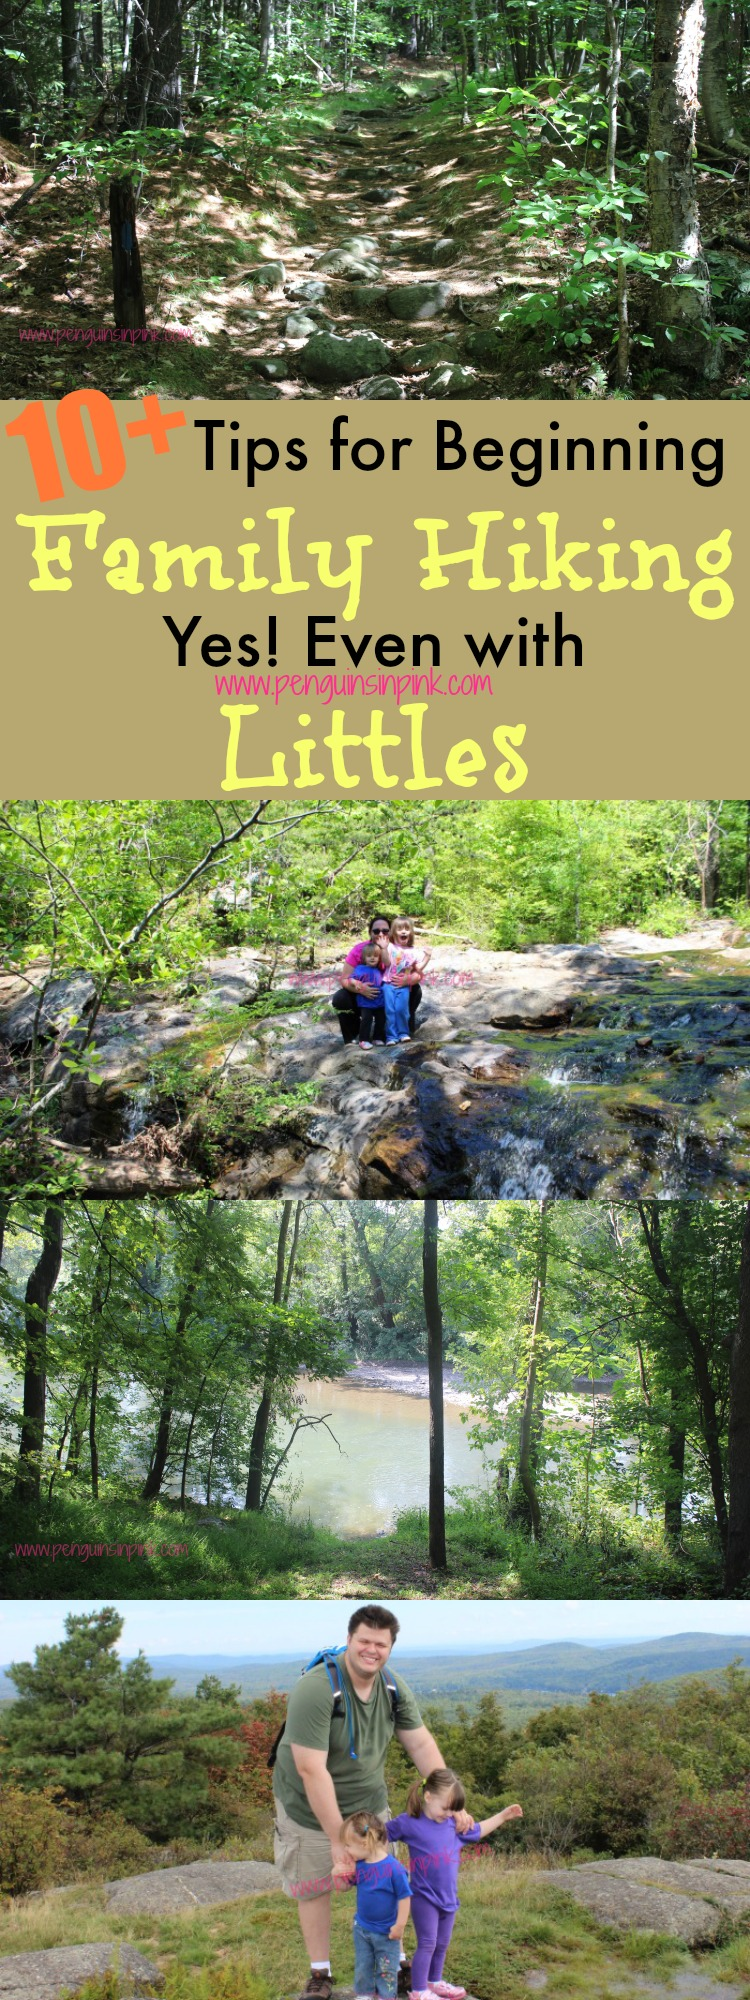 Tips for Beginning Family Hiking. Yes, Even With Littles - What I wish we had known before we decided to go for a hike one day! 10 plus tips to consider before beginning hiking as a family.